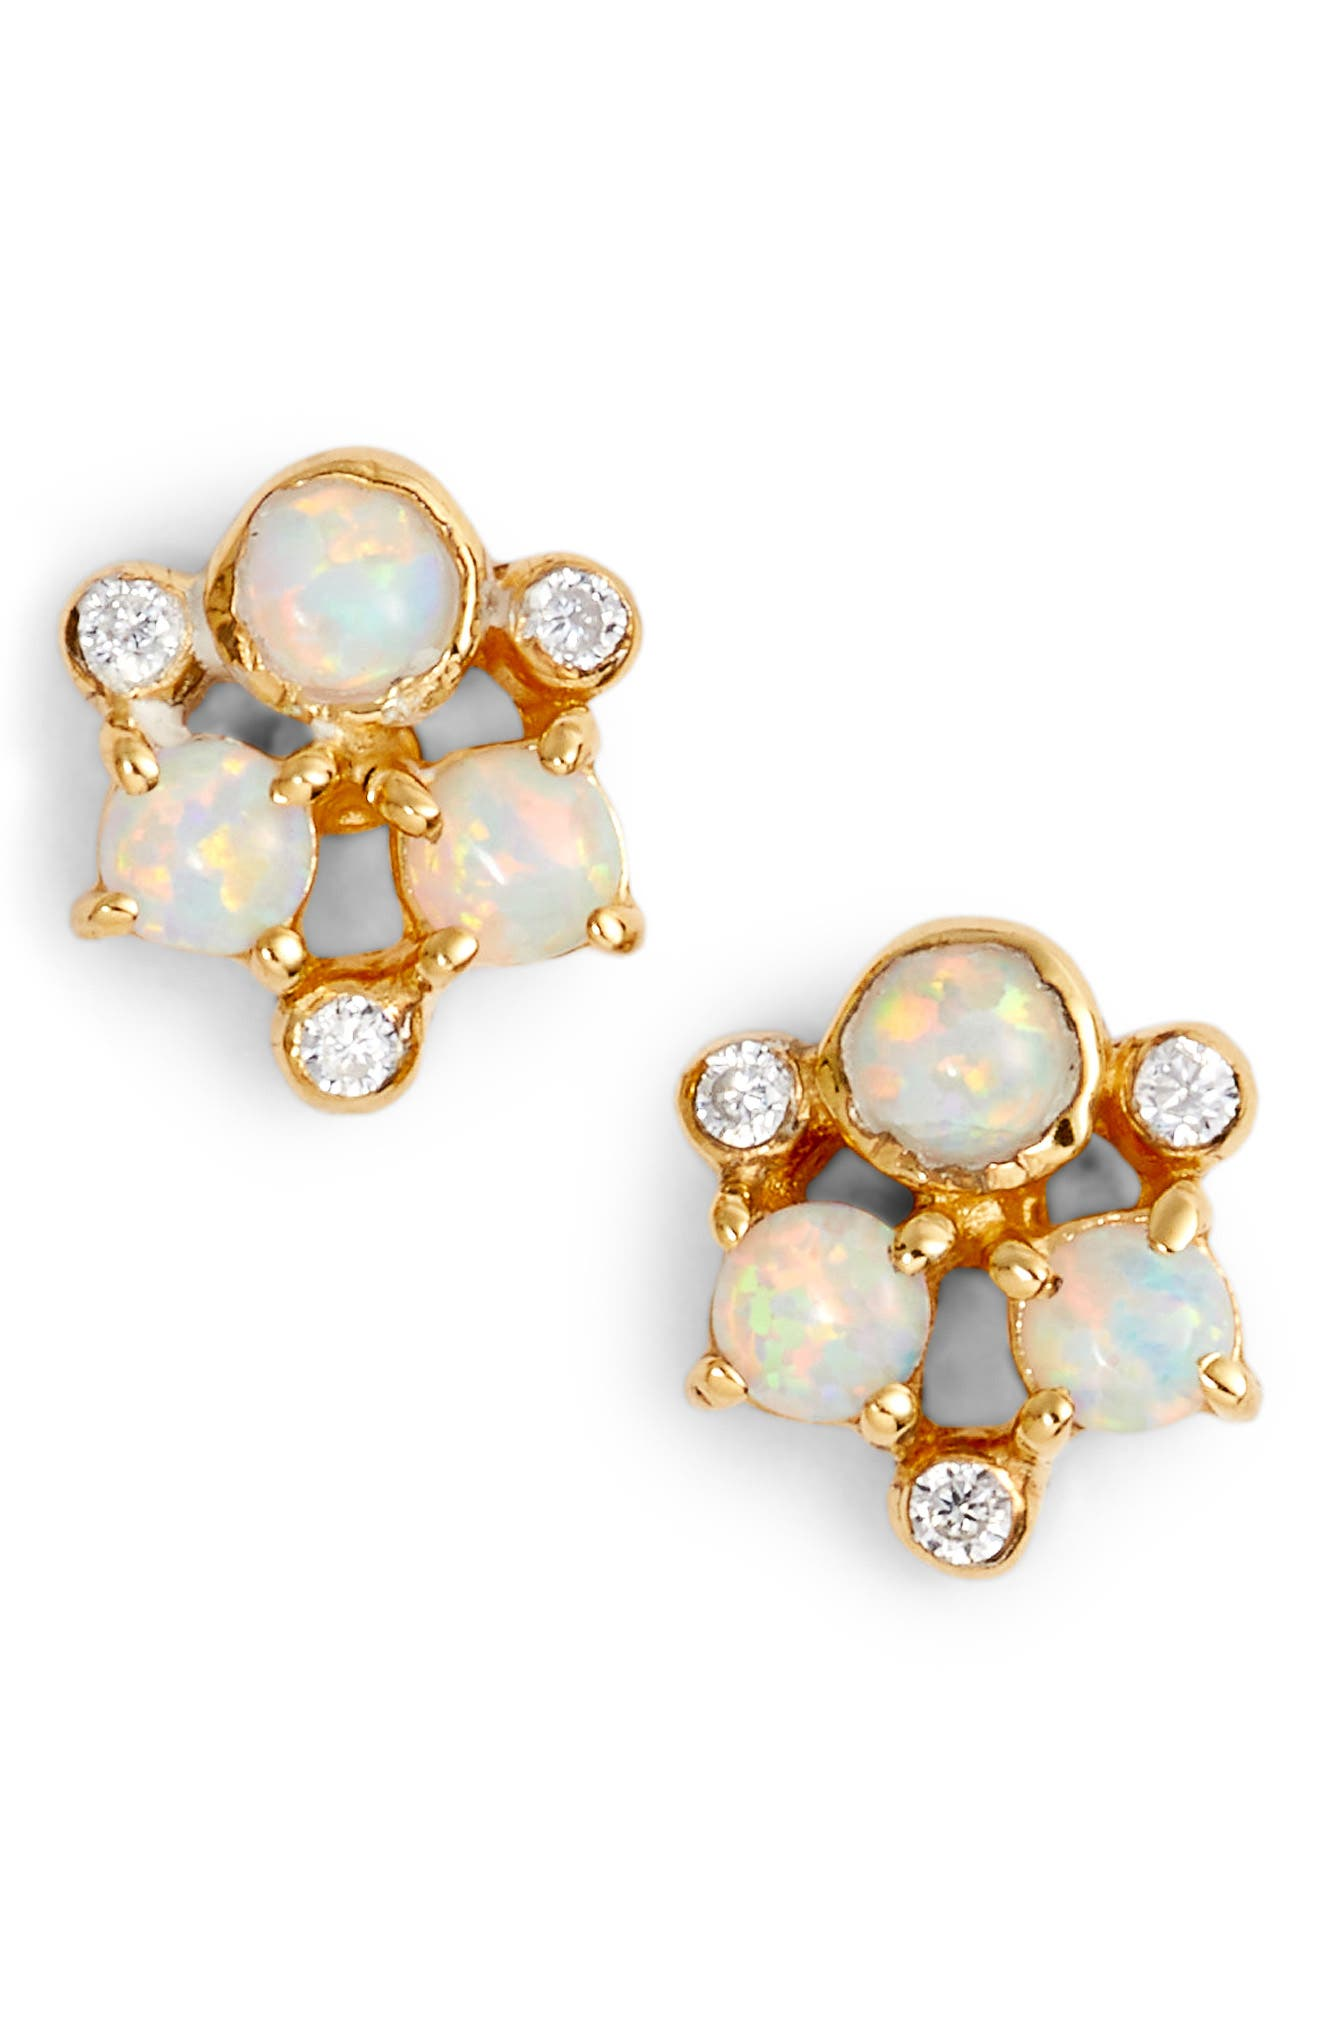 Sydney Cluster Stud Earrings,                         Main,                         color, Gold